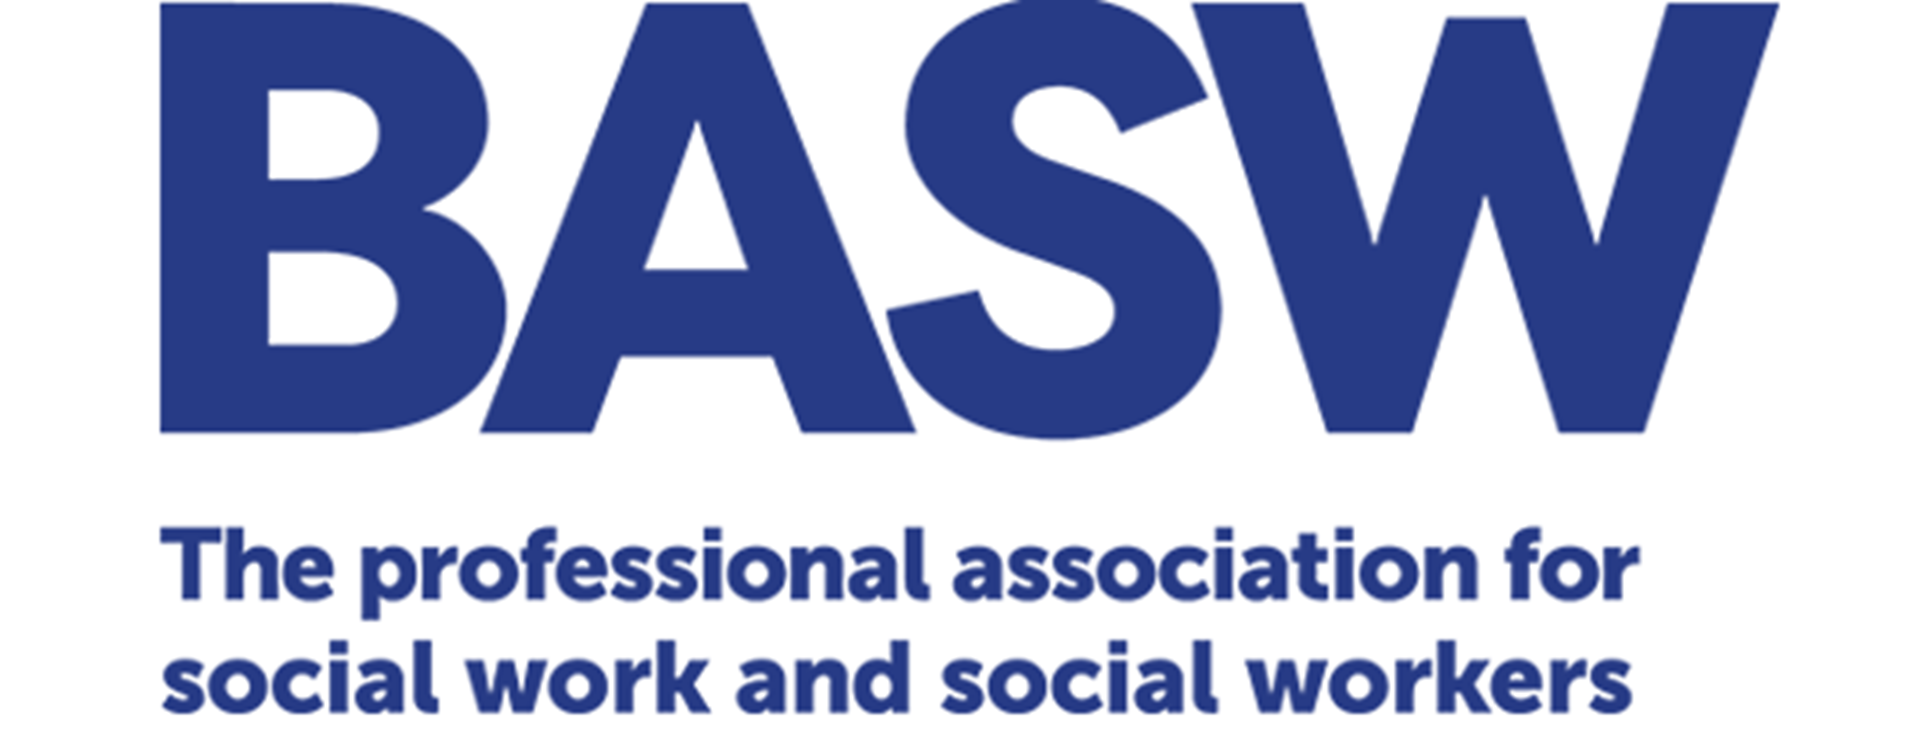 BASW The professional association for social work and social workers logo